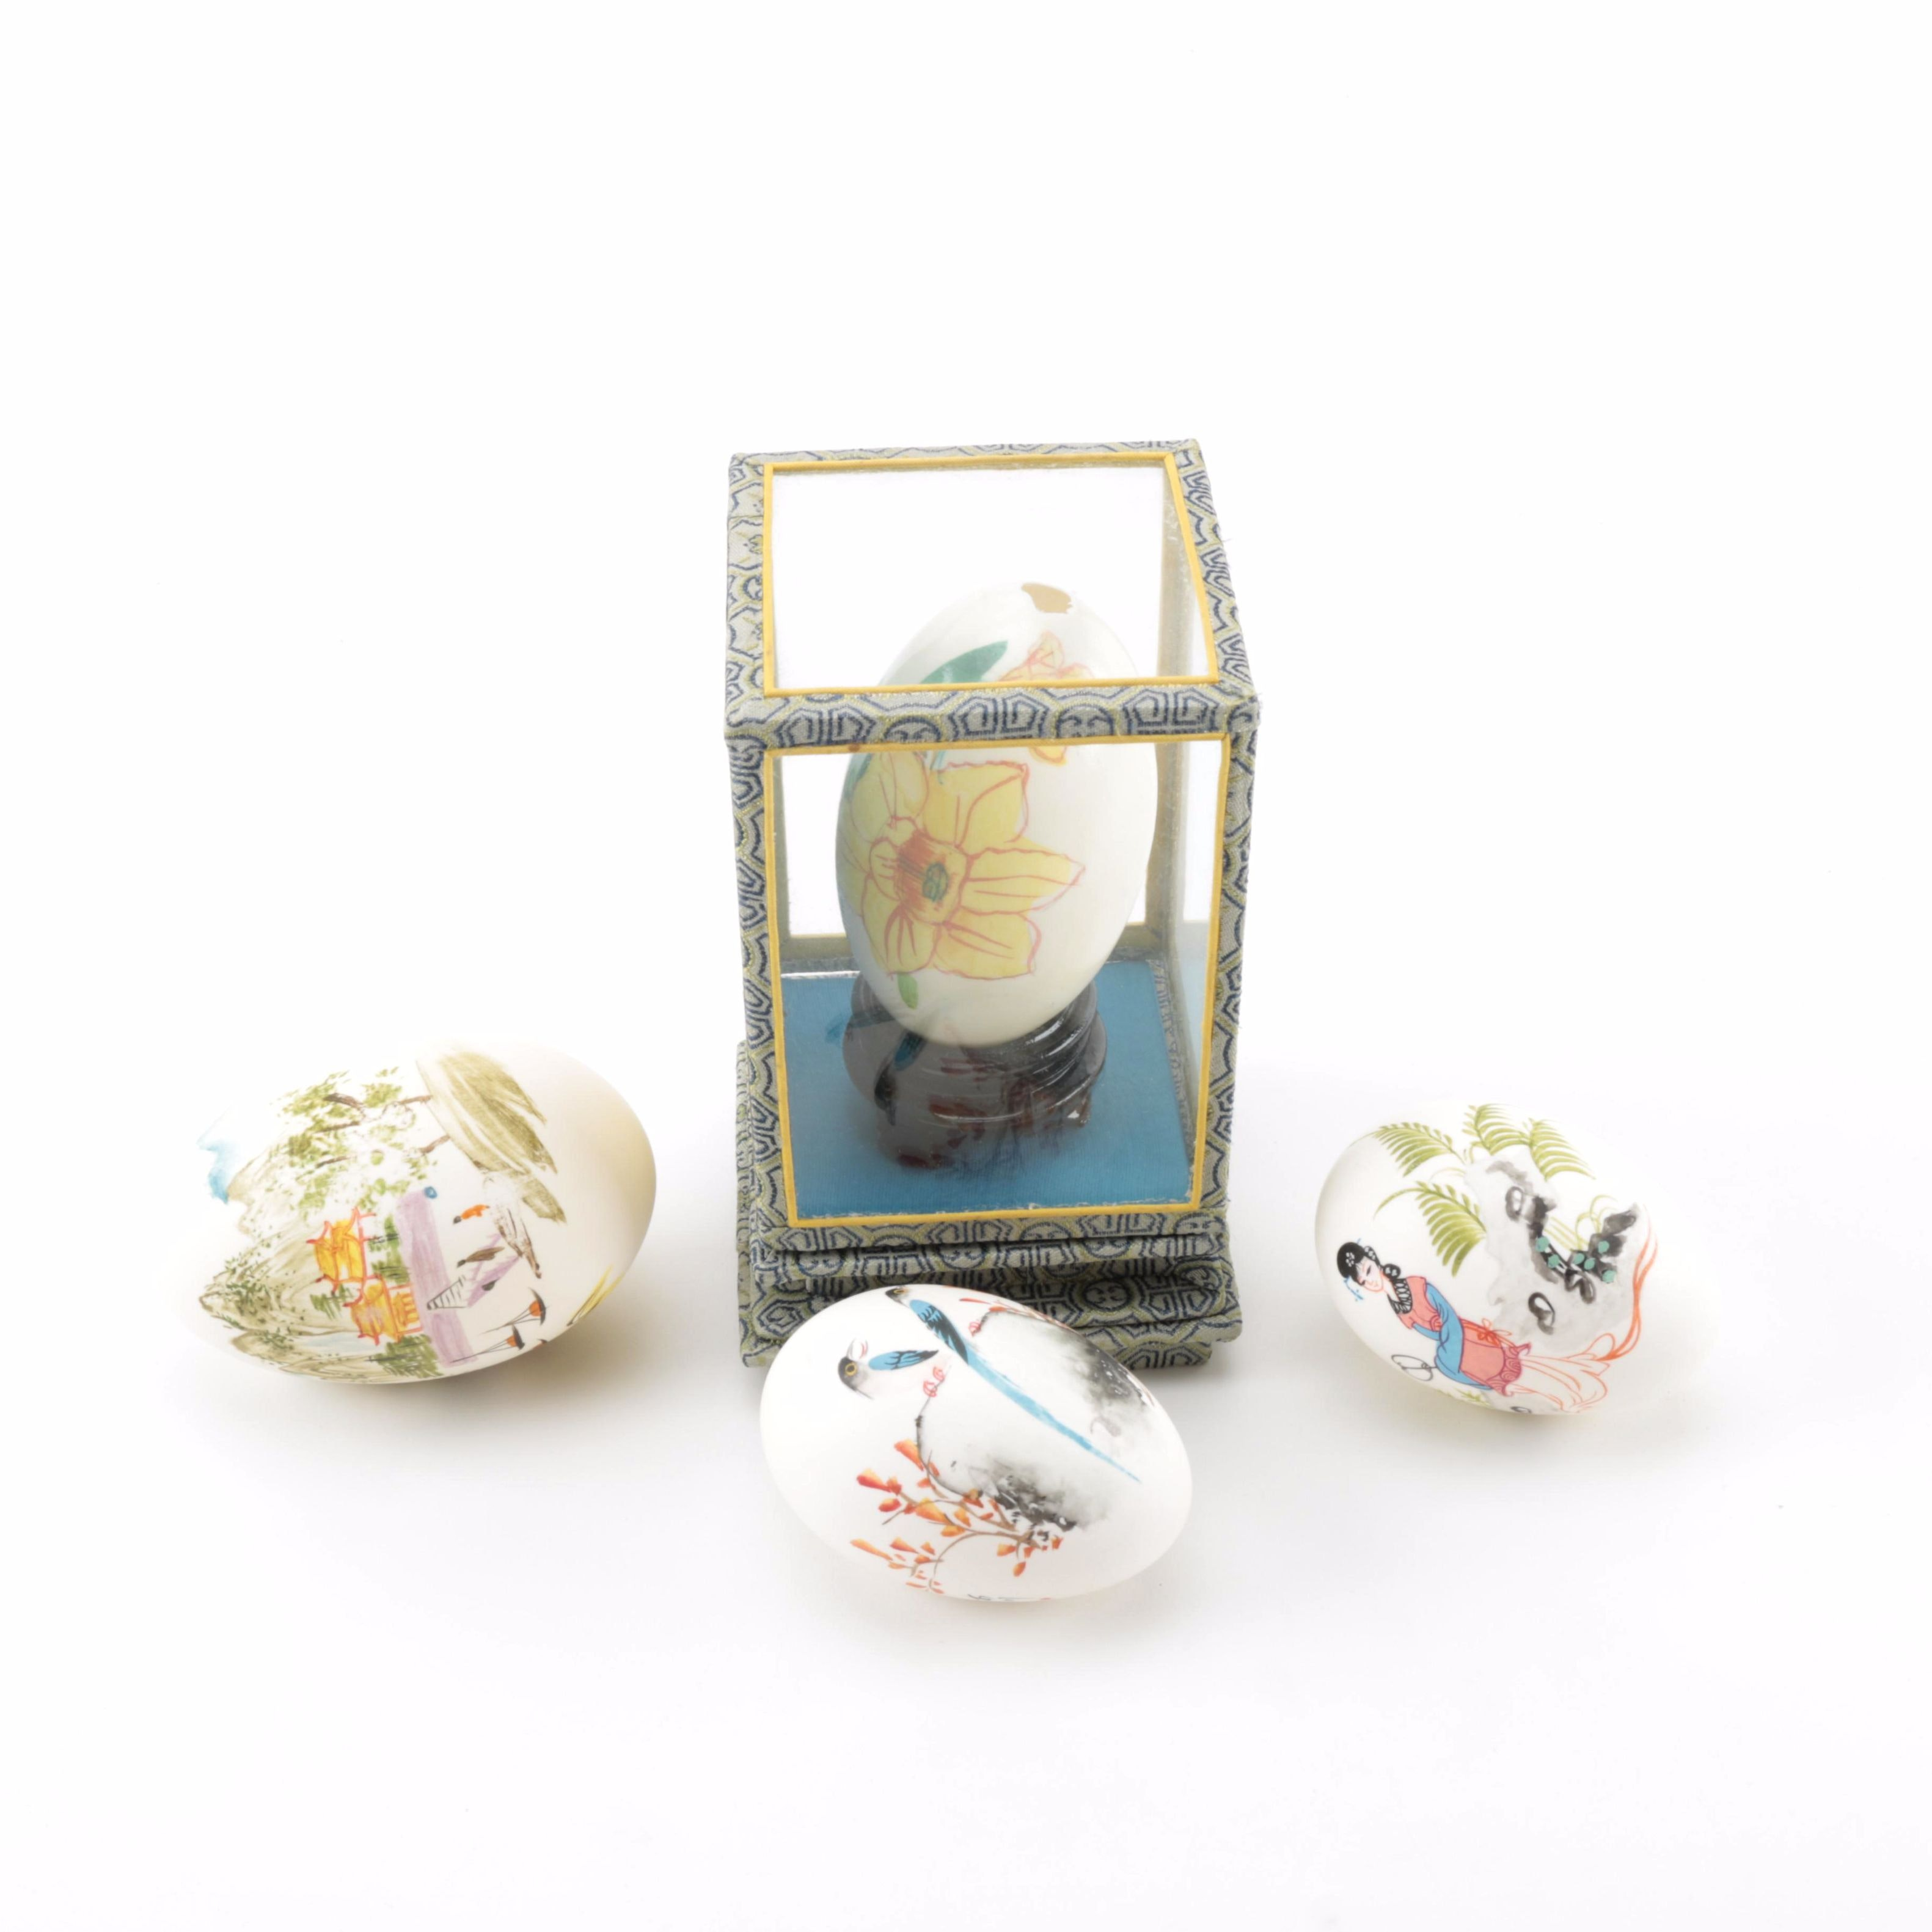 Collection of Hand Painted Decorative Eggs